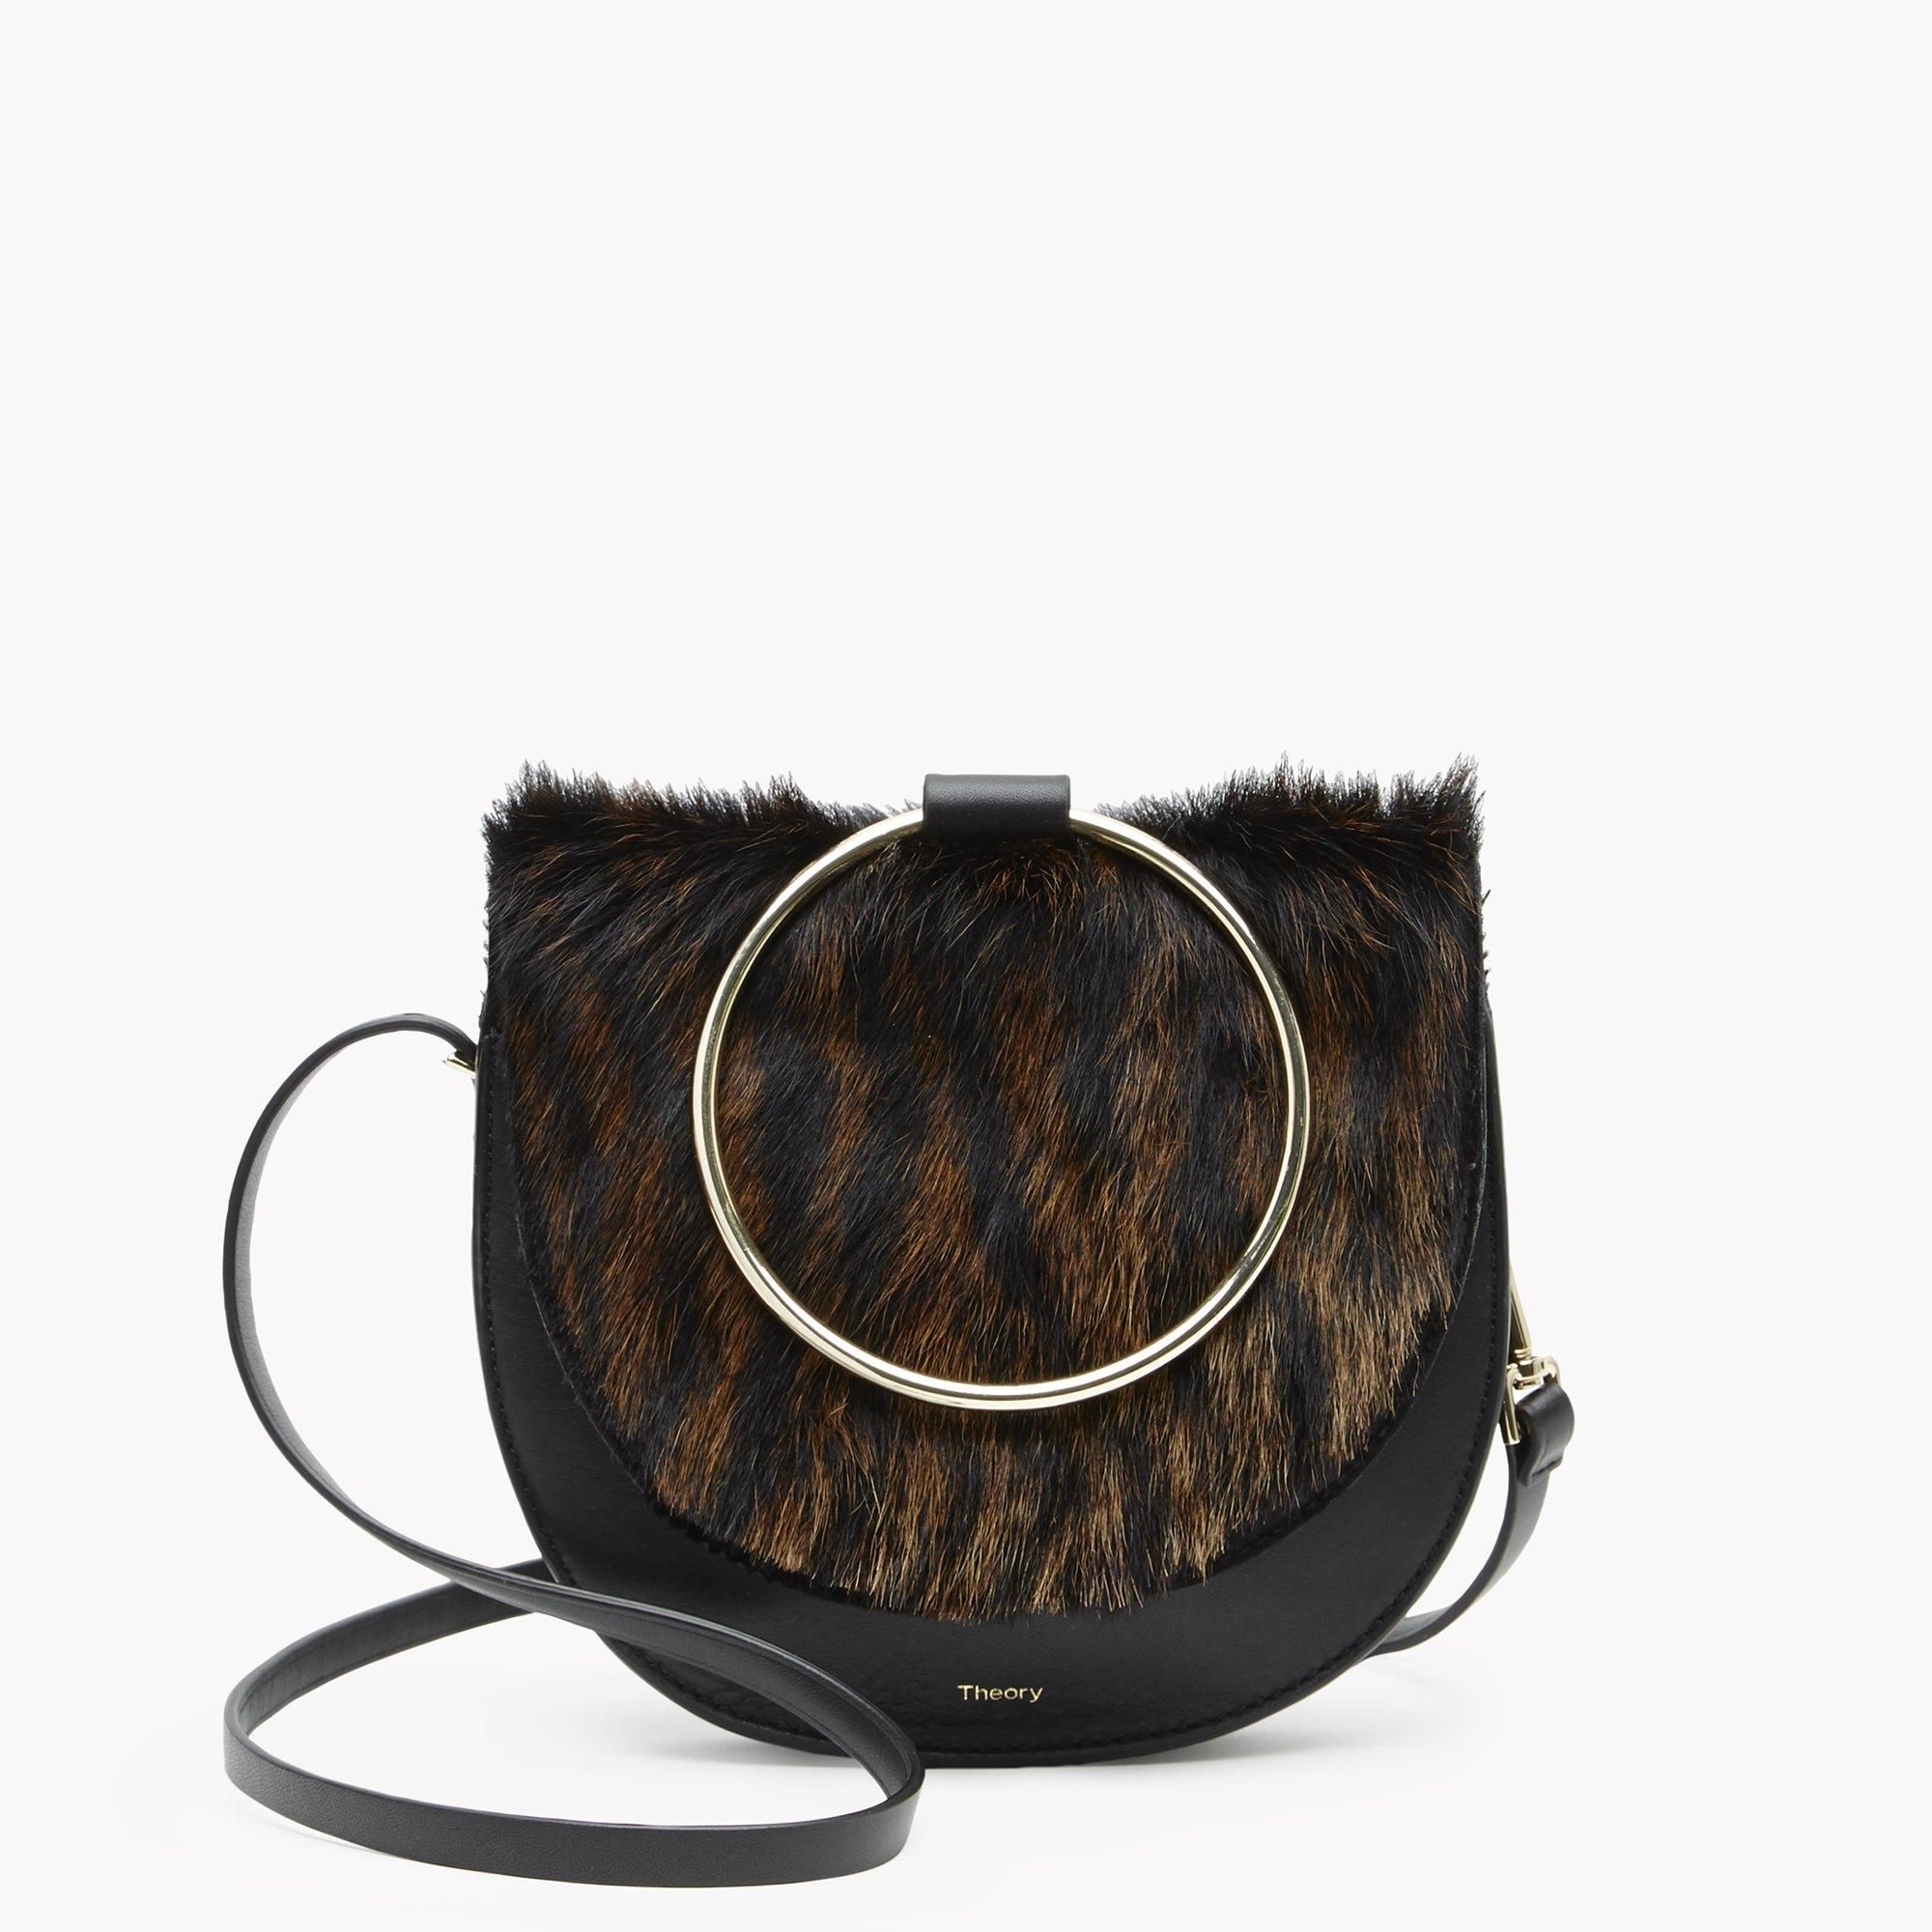 38c8ba1430f Our striking handbag featuring a brilliant 10kt gold-finished handle and  alluring curves emphasized with heavy edge stitching.